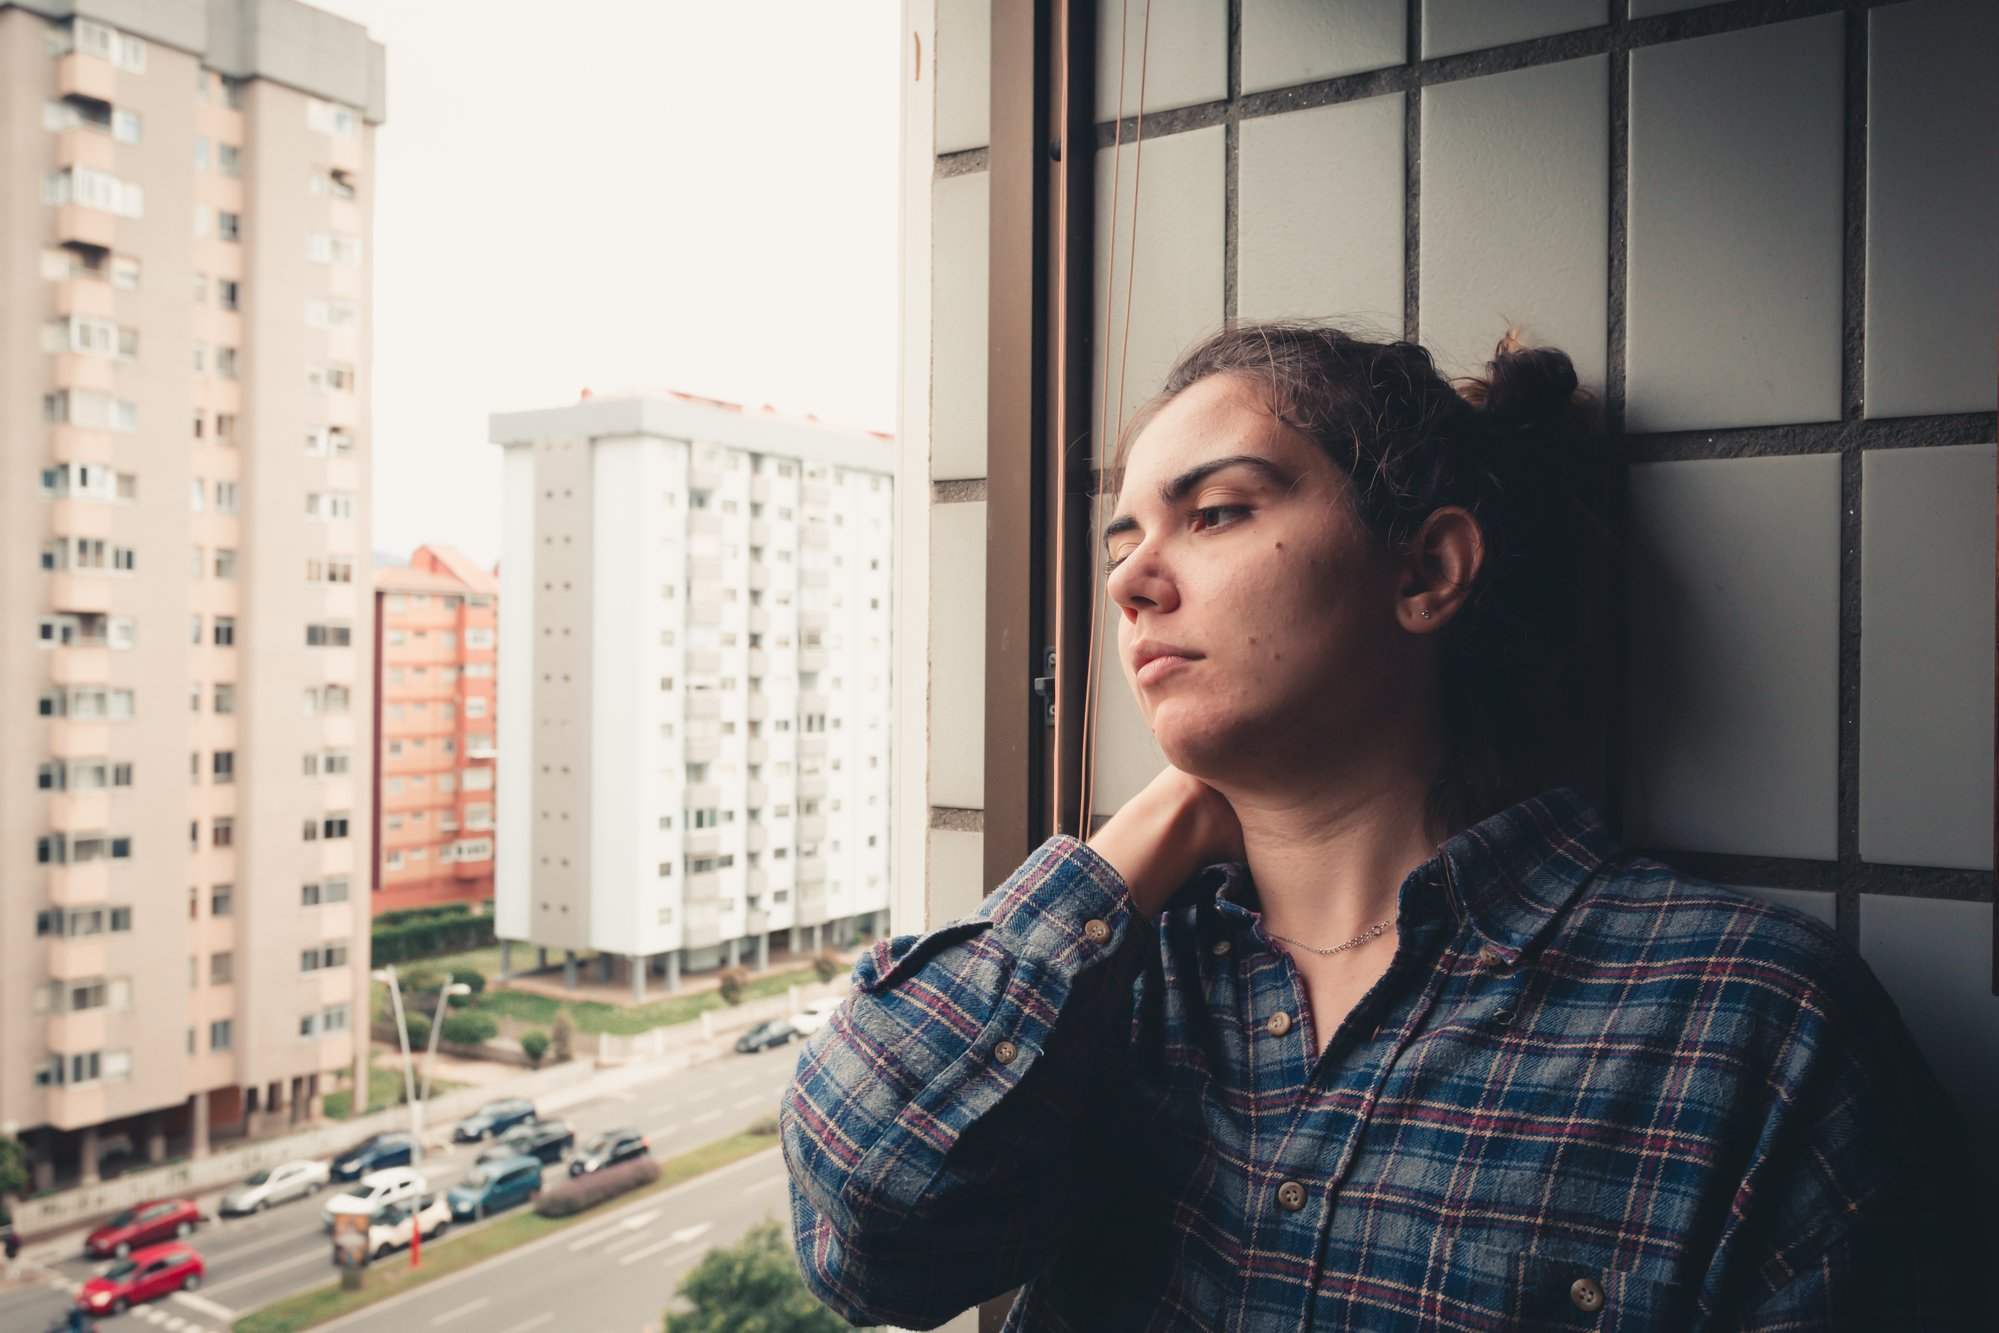 woman leans on a tiled wall and looks out the window 女人靠在铺着瓷砖的墙上望着窗外。